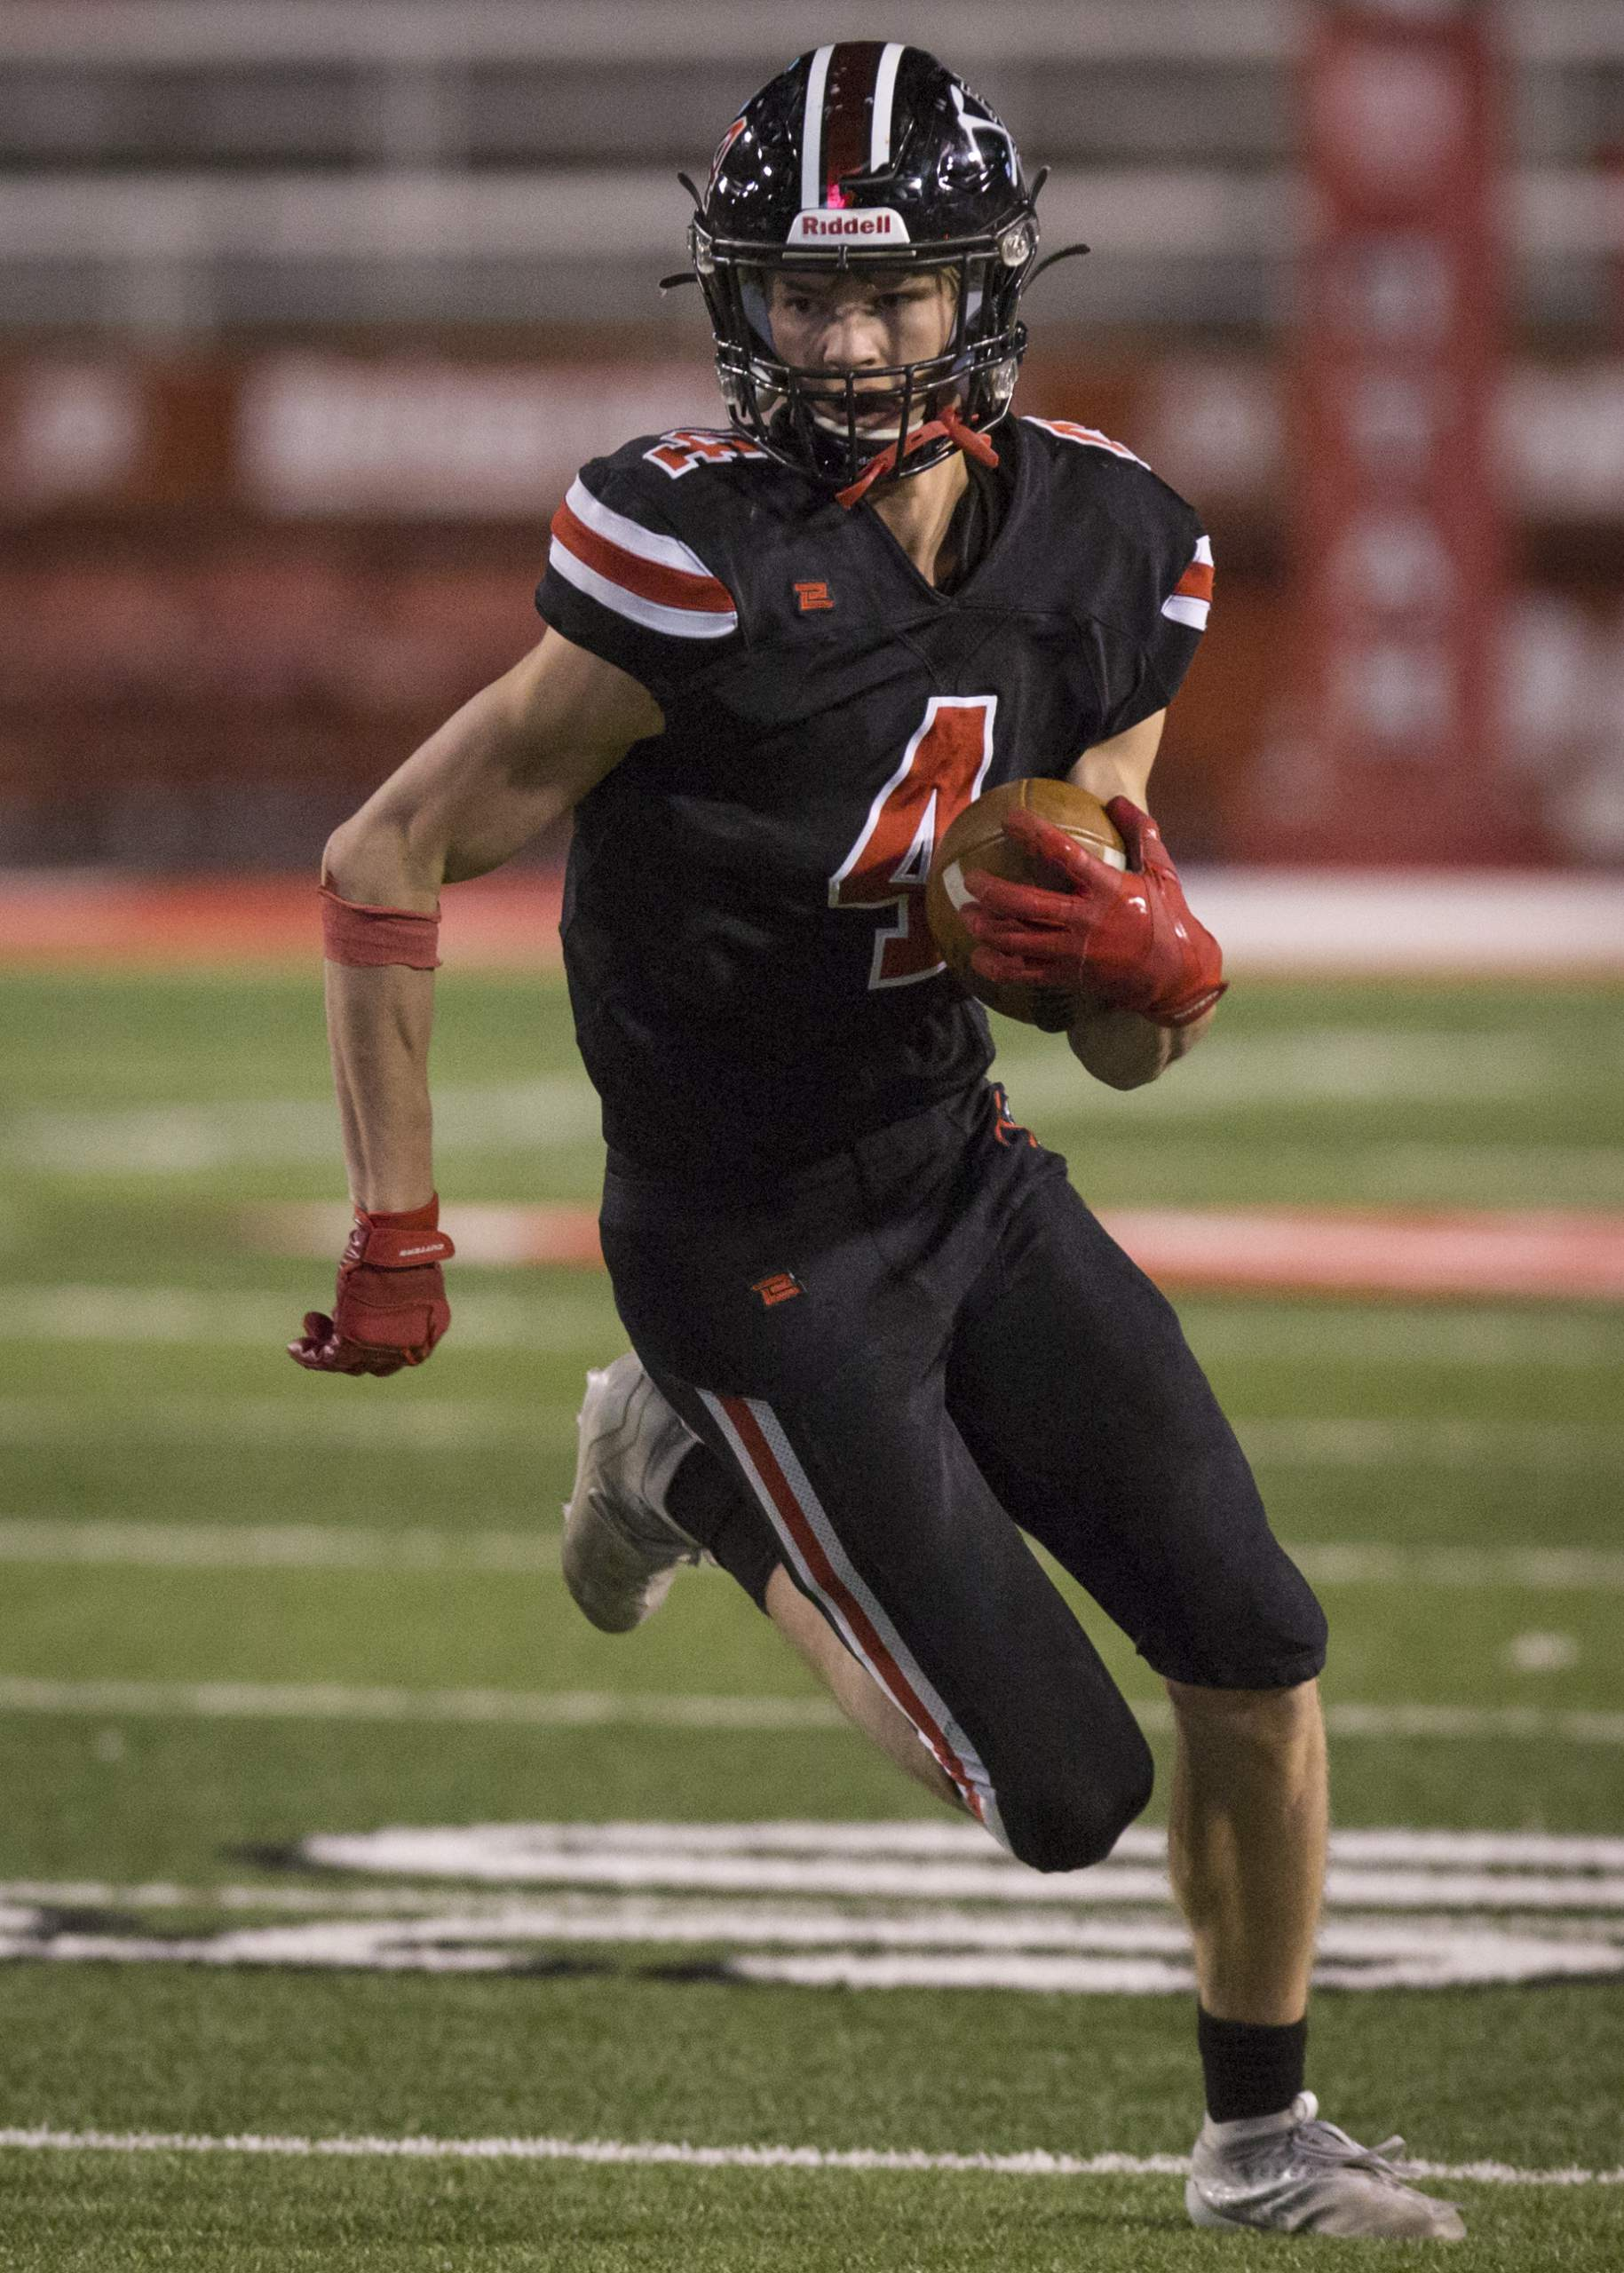 Park City High School athletes took home multiple All-Region honors